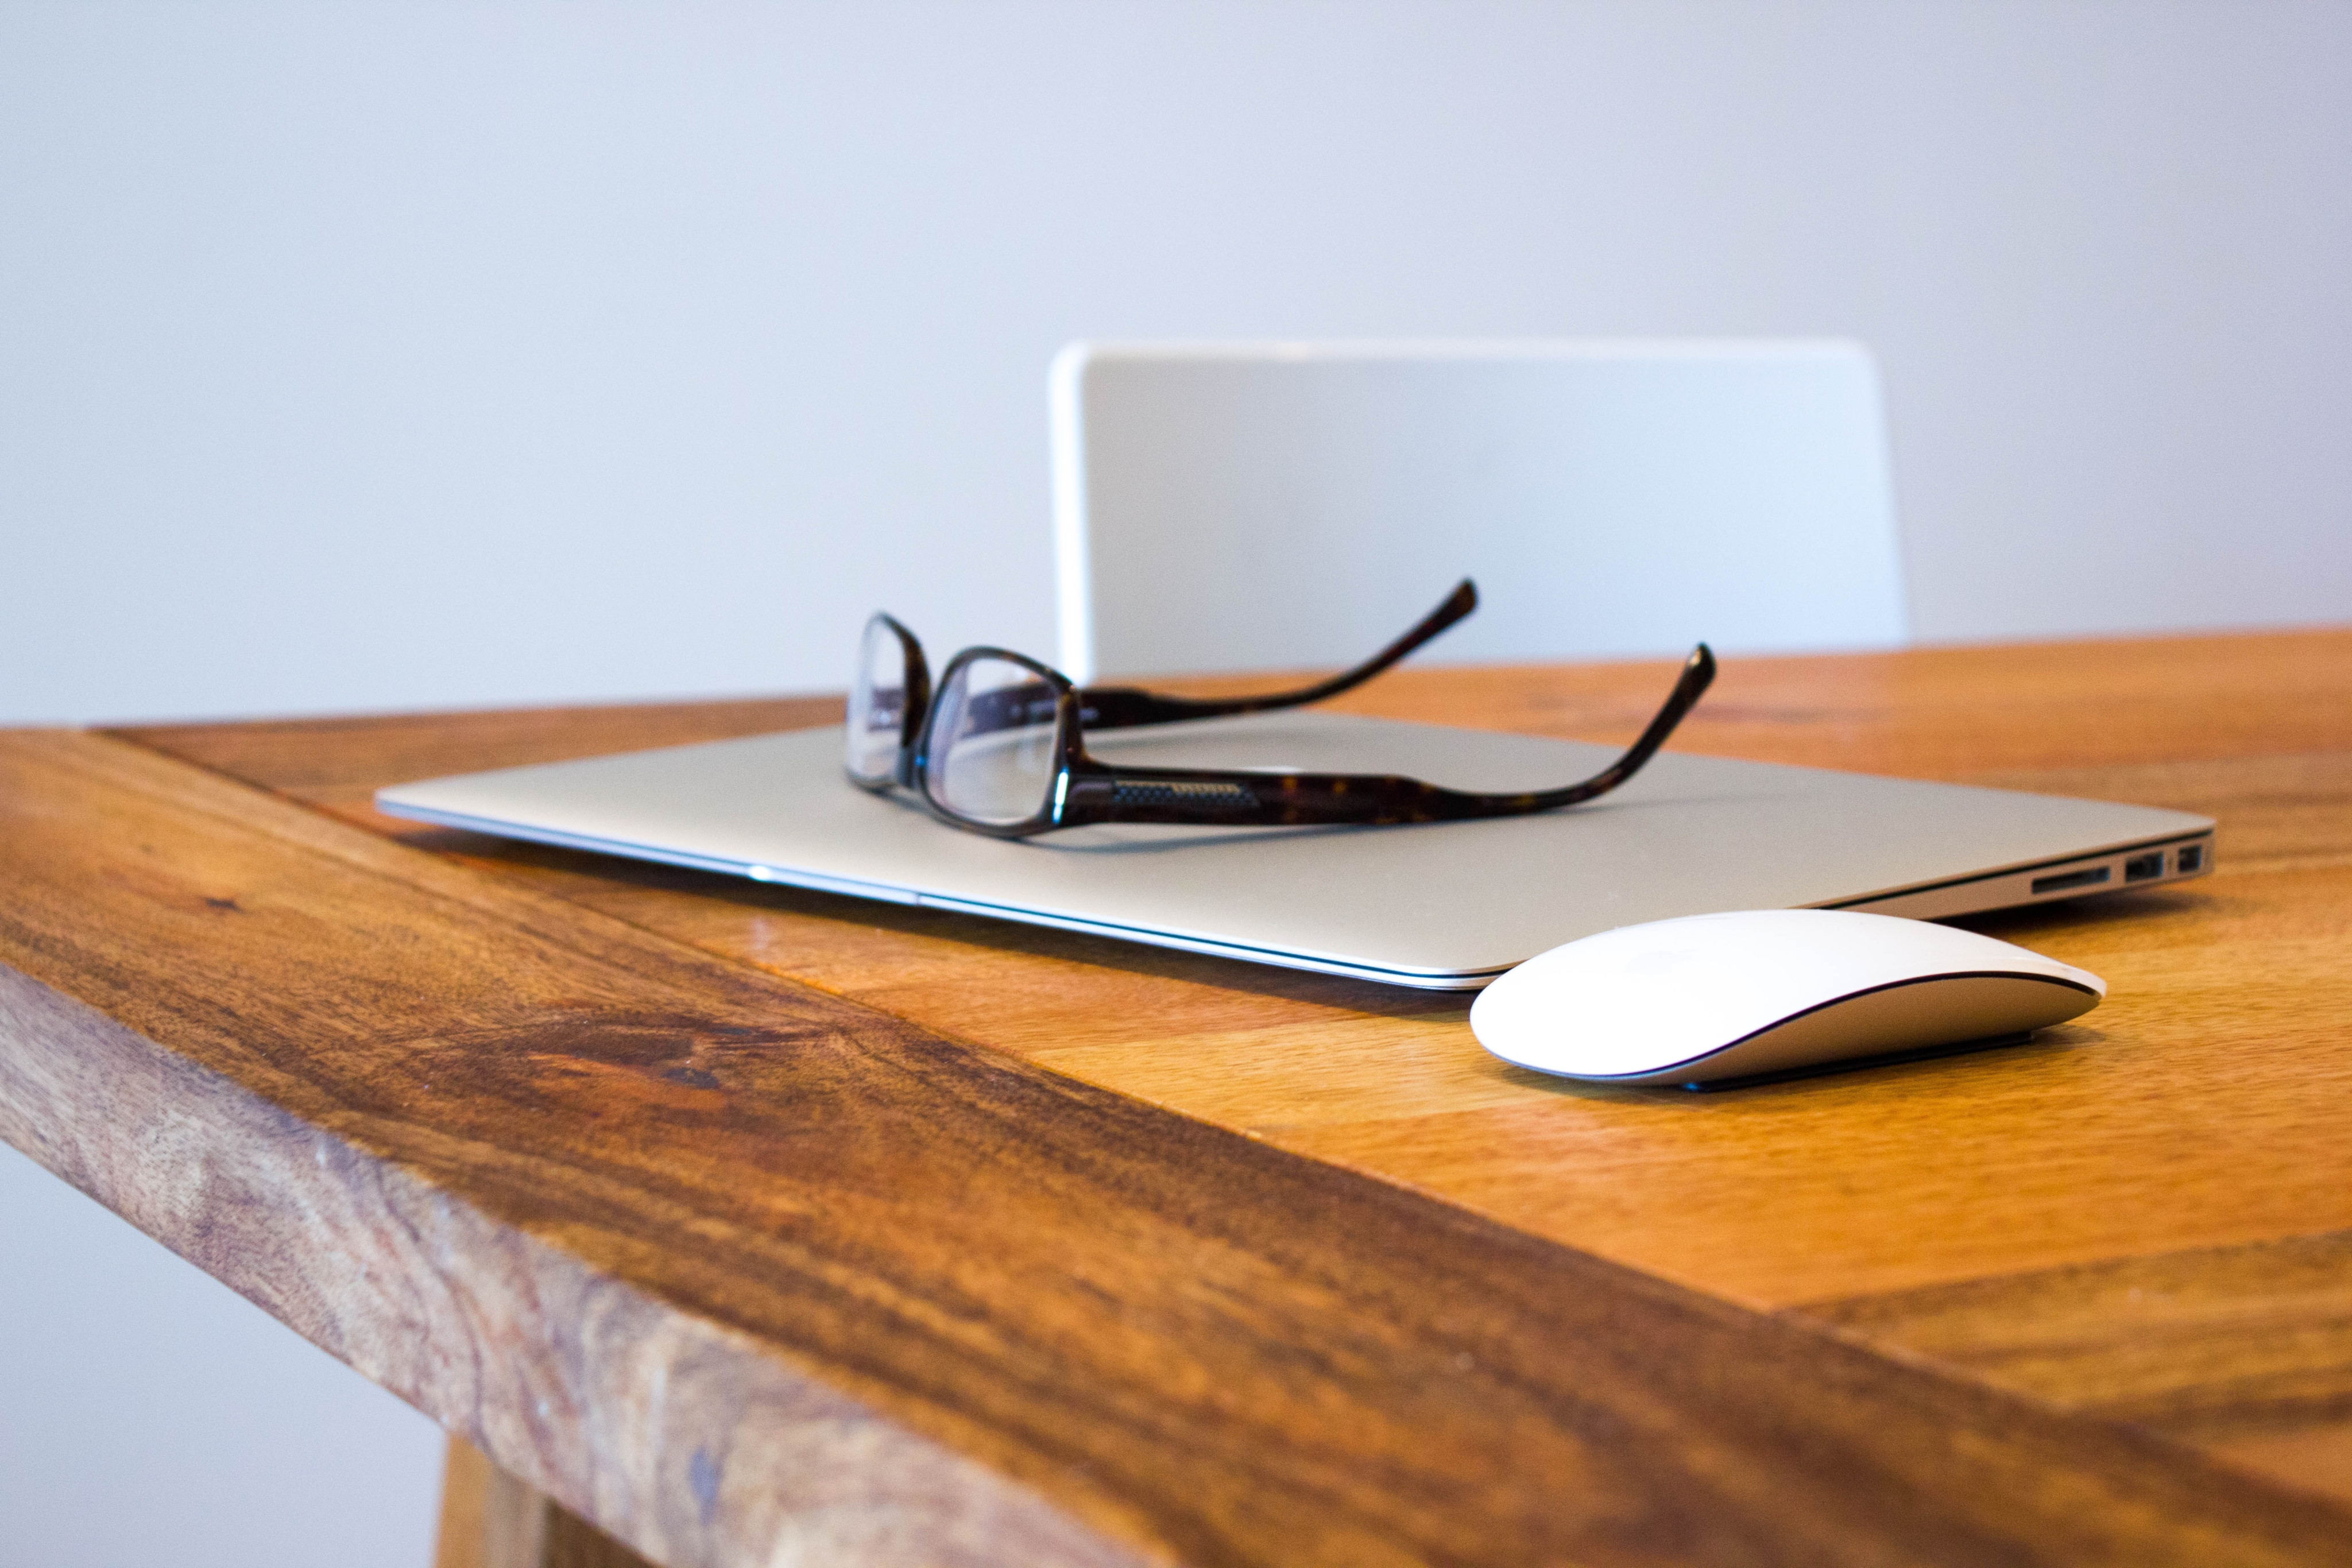 A pair of glasses on top of a laptop, next to a mouse on a wooden table.